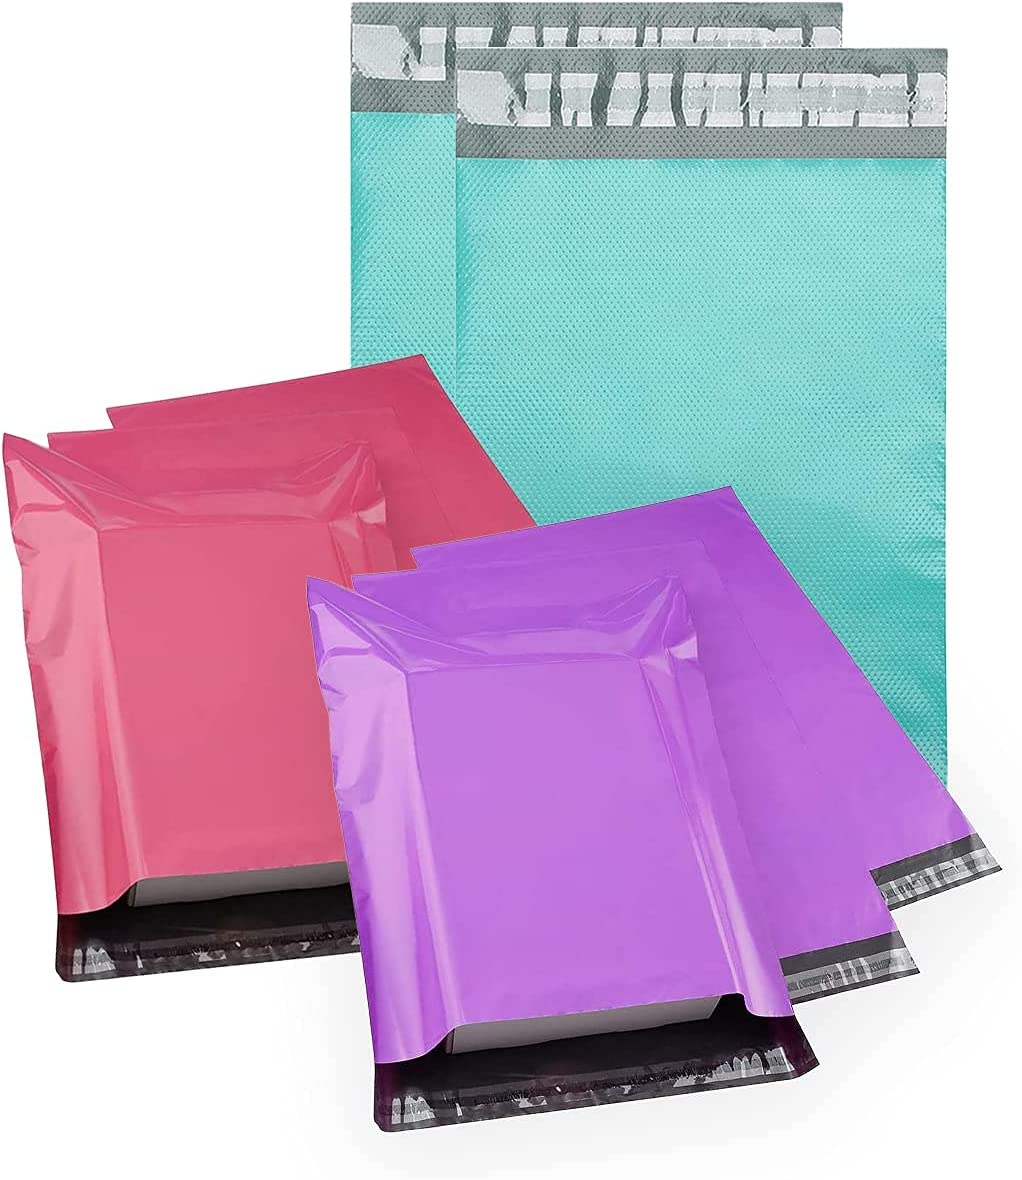 Metronic Poly Mailers Assorted Variety Popular overseas Teal Pack Omaha Mall Pink 14.5x19